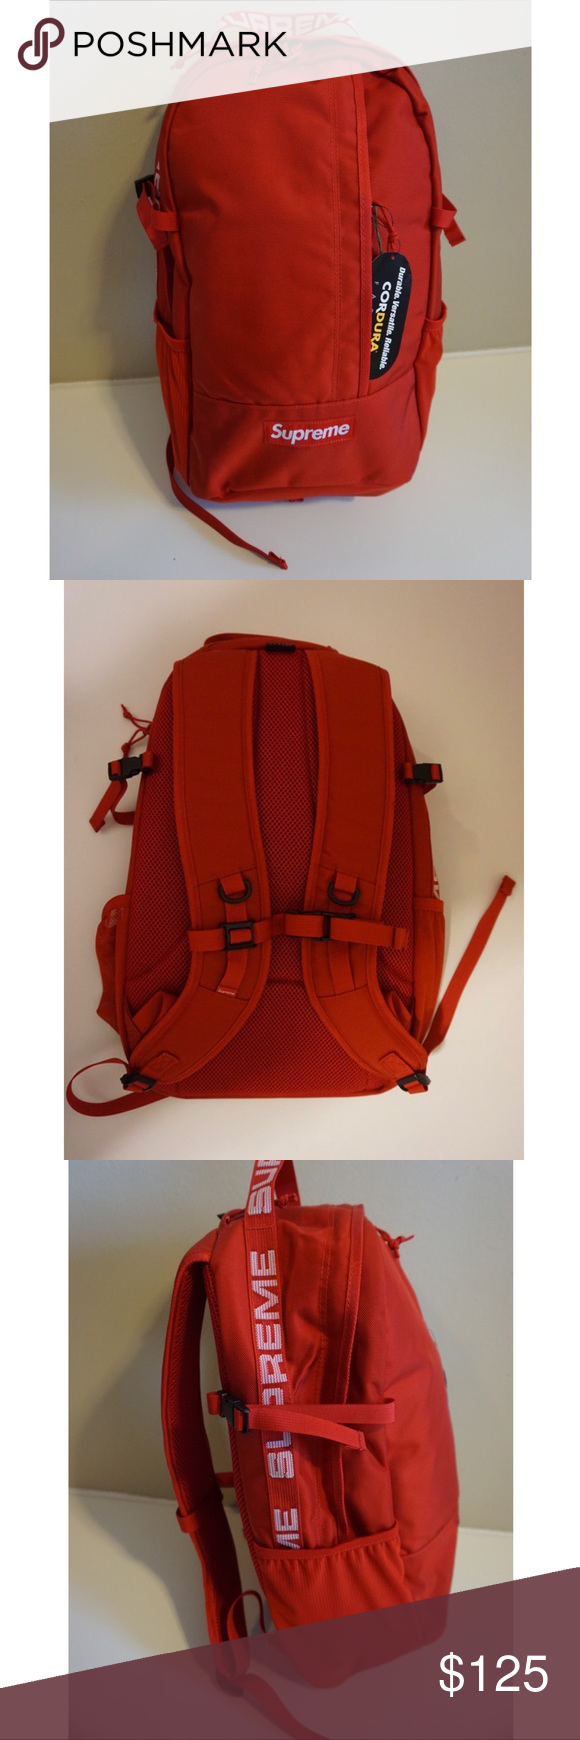 84d718ee Supreme Backpack Purchase brand new from StockX Perfect condition. Supreme  Bags Backpacks